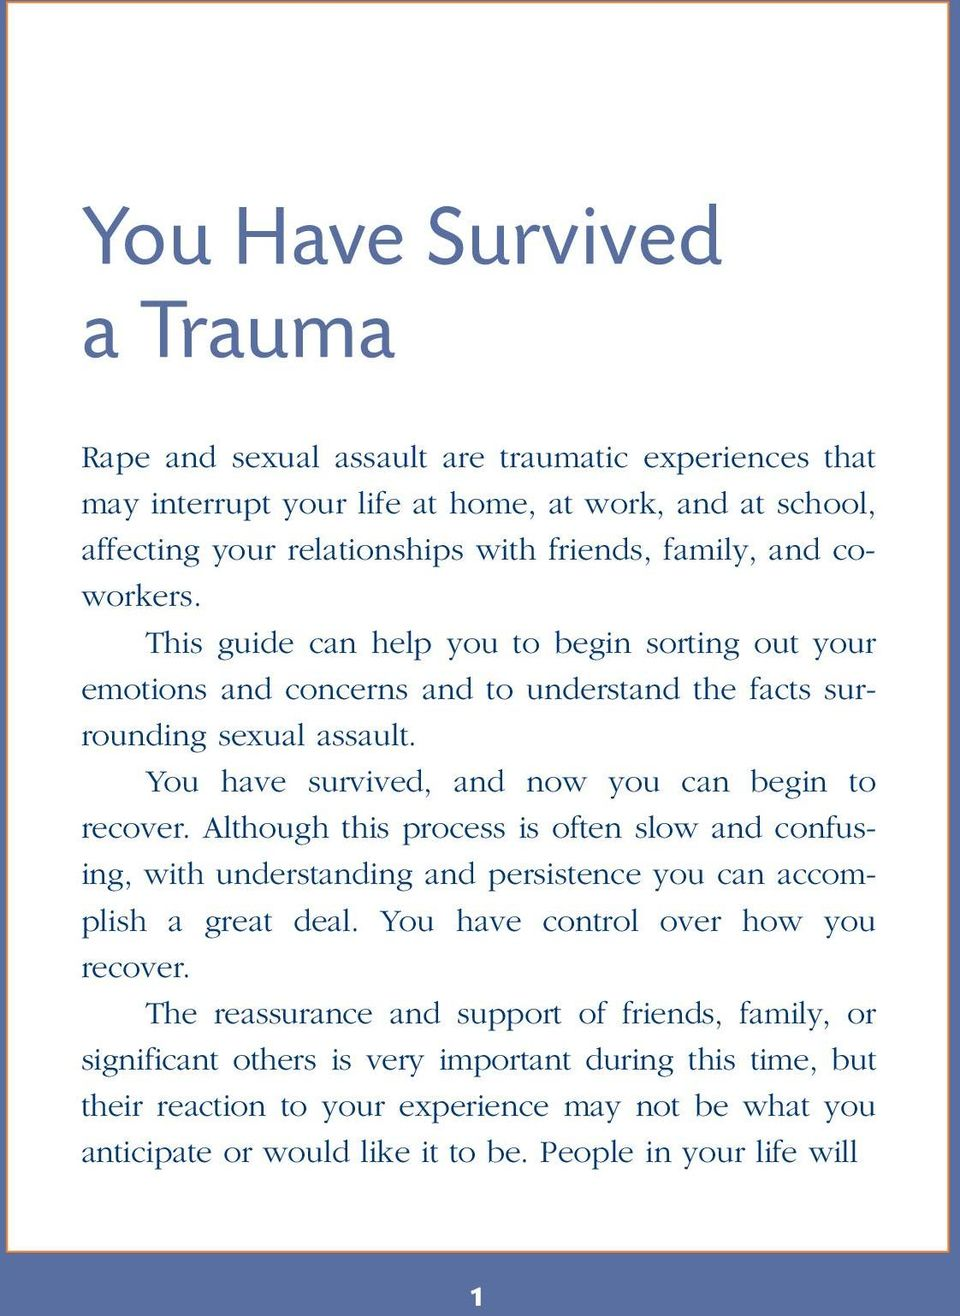 You have survived, and now you can begin to recover. Although this process is often slow and confusing, with understanding and persistence you can accomplish a great deal.